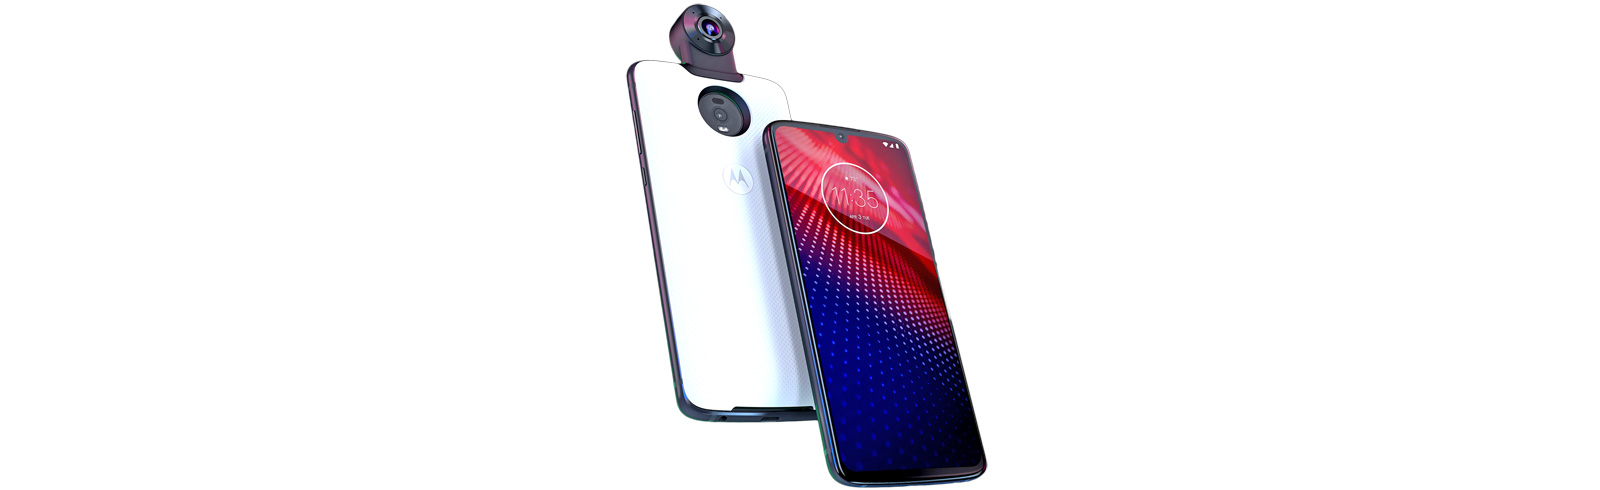 Motorola unveils the Moto Z4 with Snapdragon 675, 48MP camera, OLED display